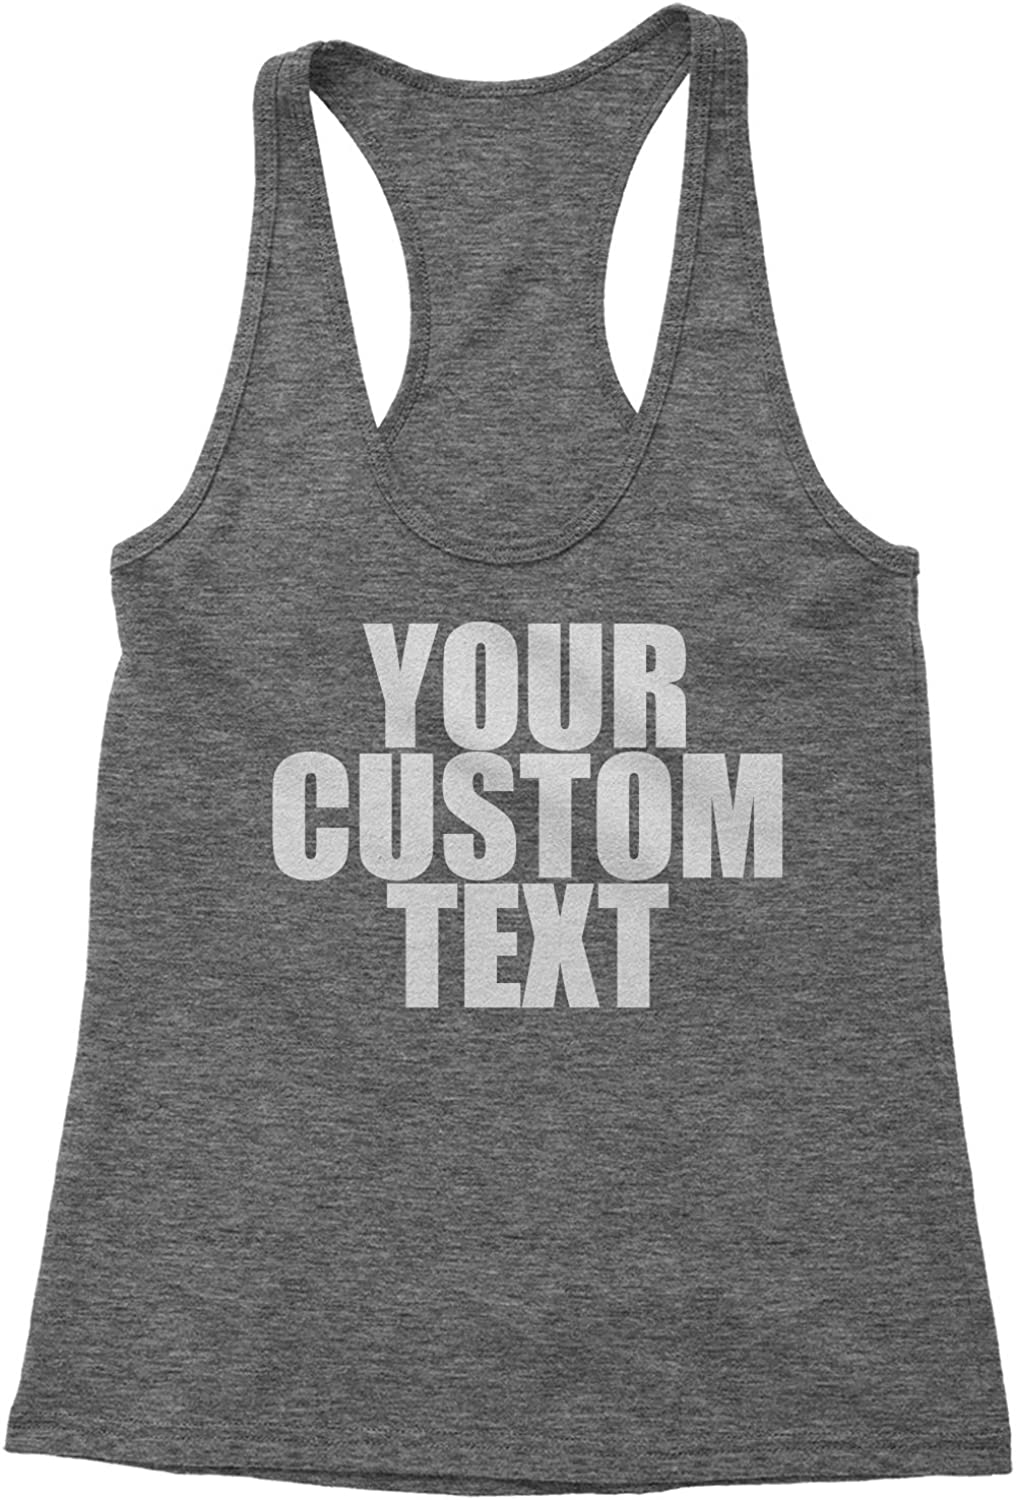 Add Your Own Text Hoodie Tank Top Sweatshirt Expression Tees Custom T-Shirt